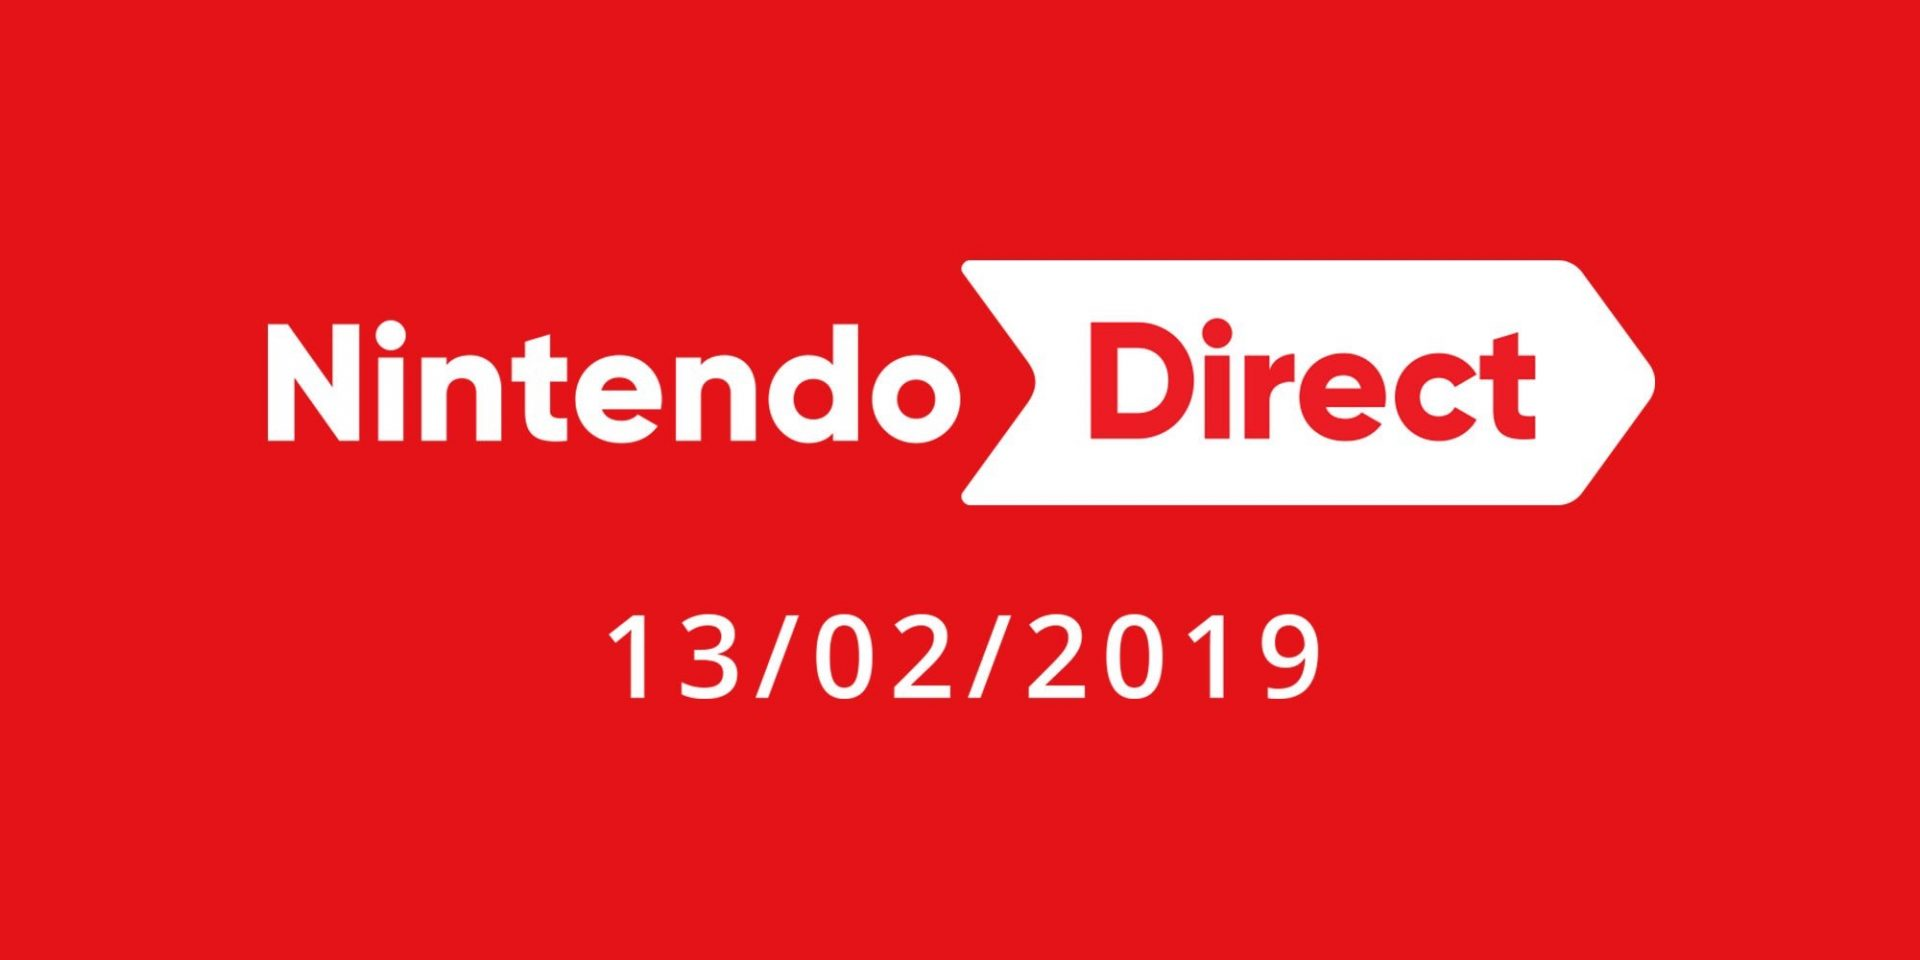 Announced Nintendo Direct Games List